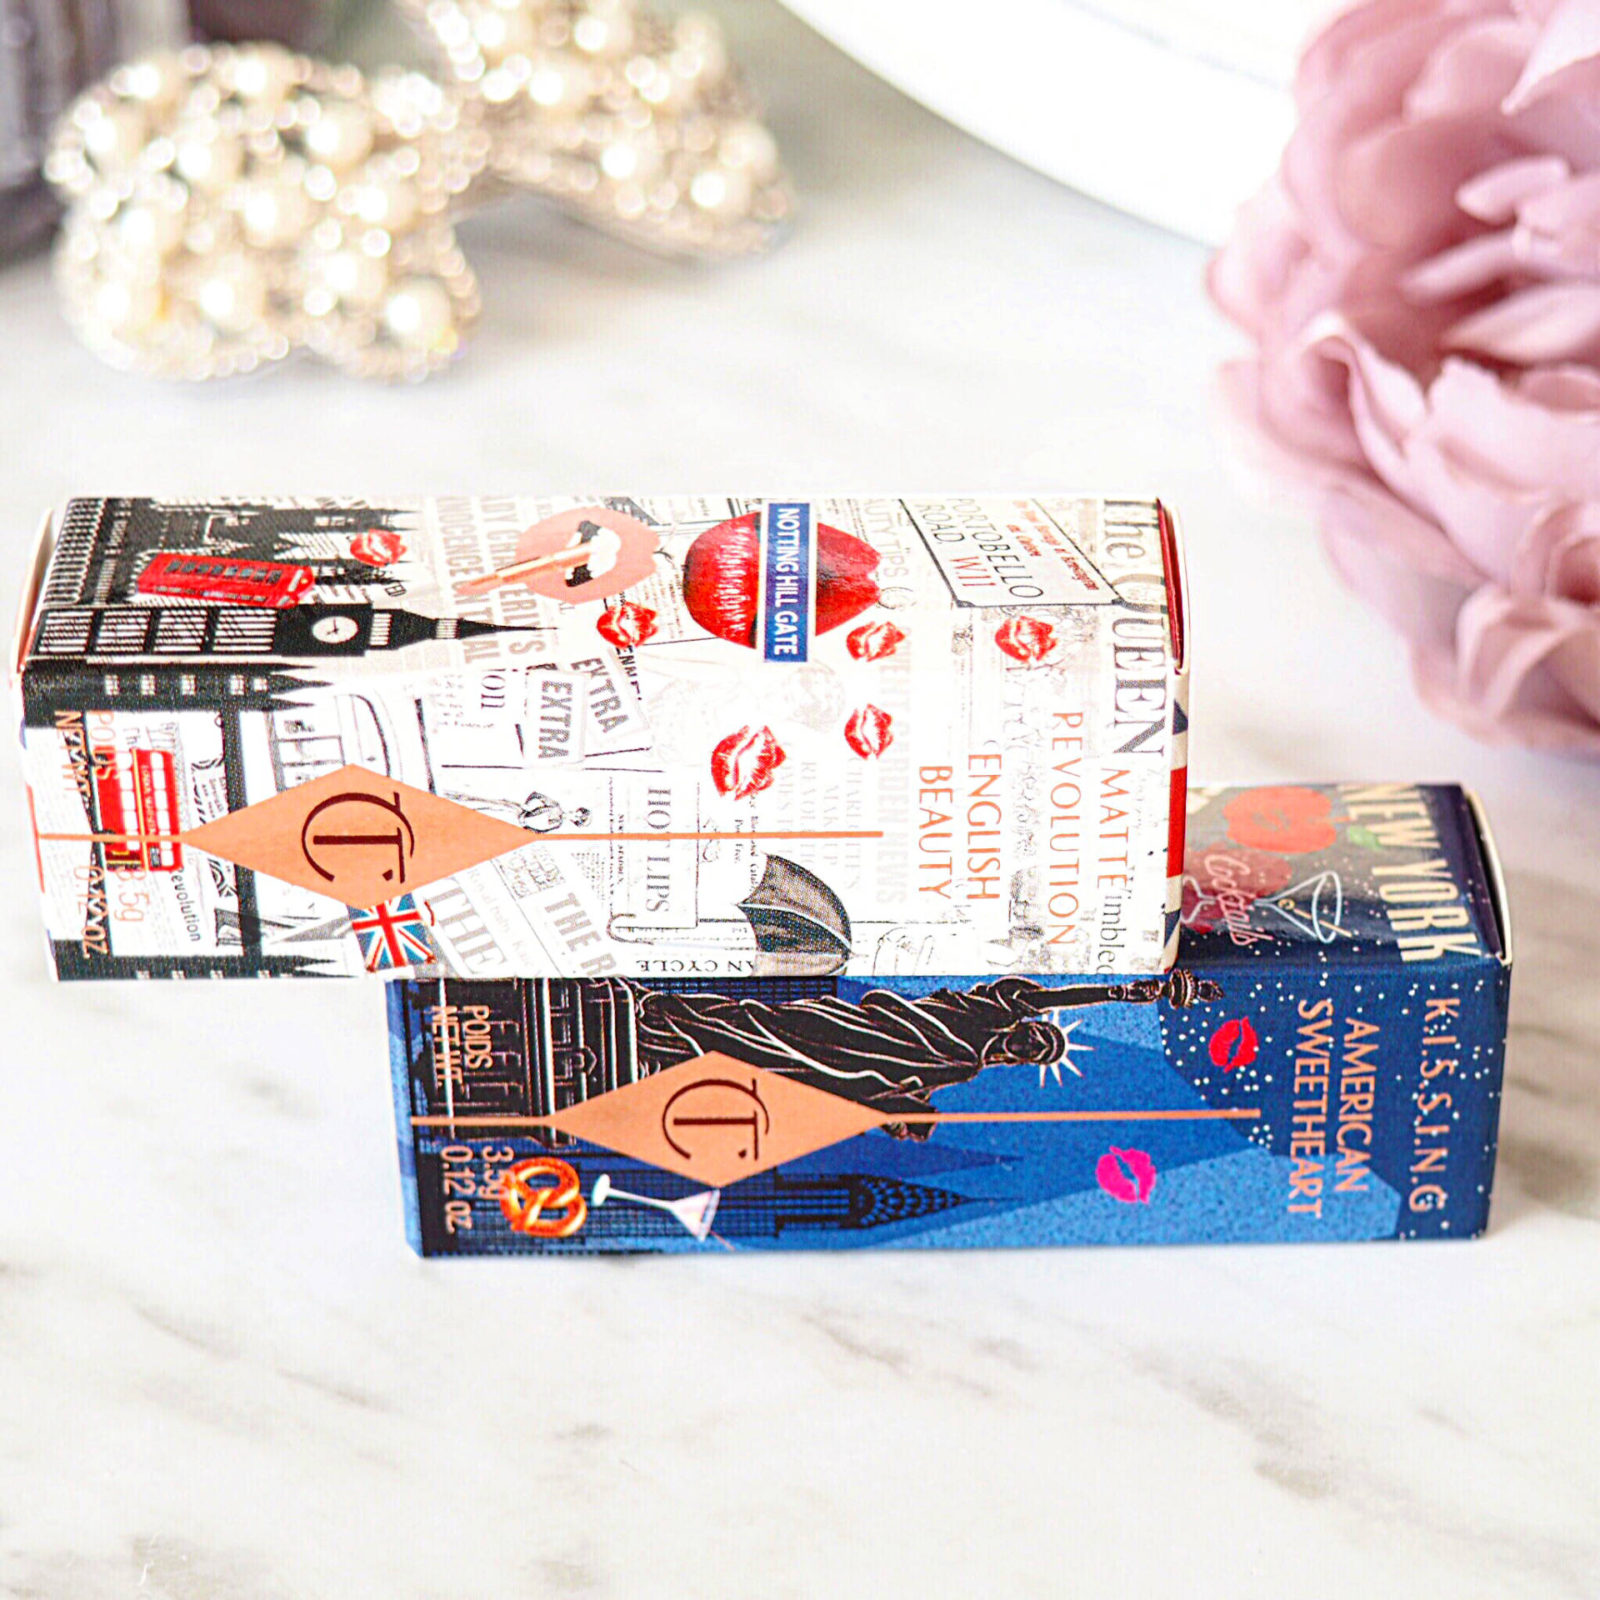 Charlotte Tilbury English Beauty and American Sweetheart Lipsticks